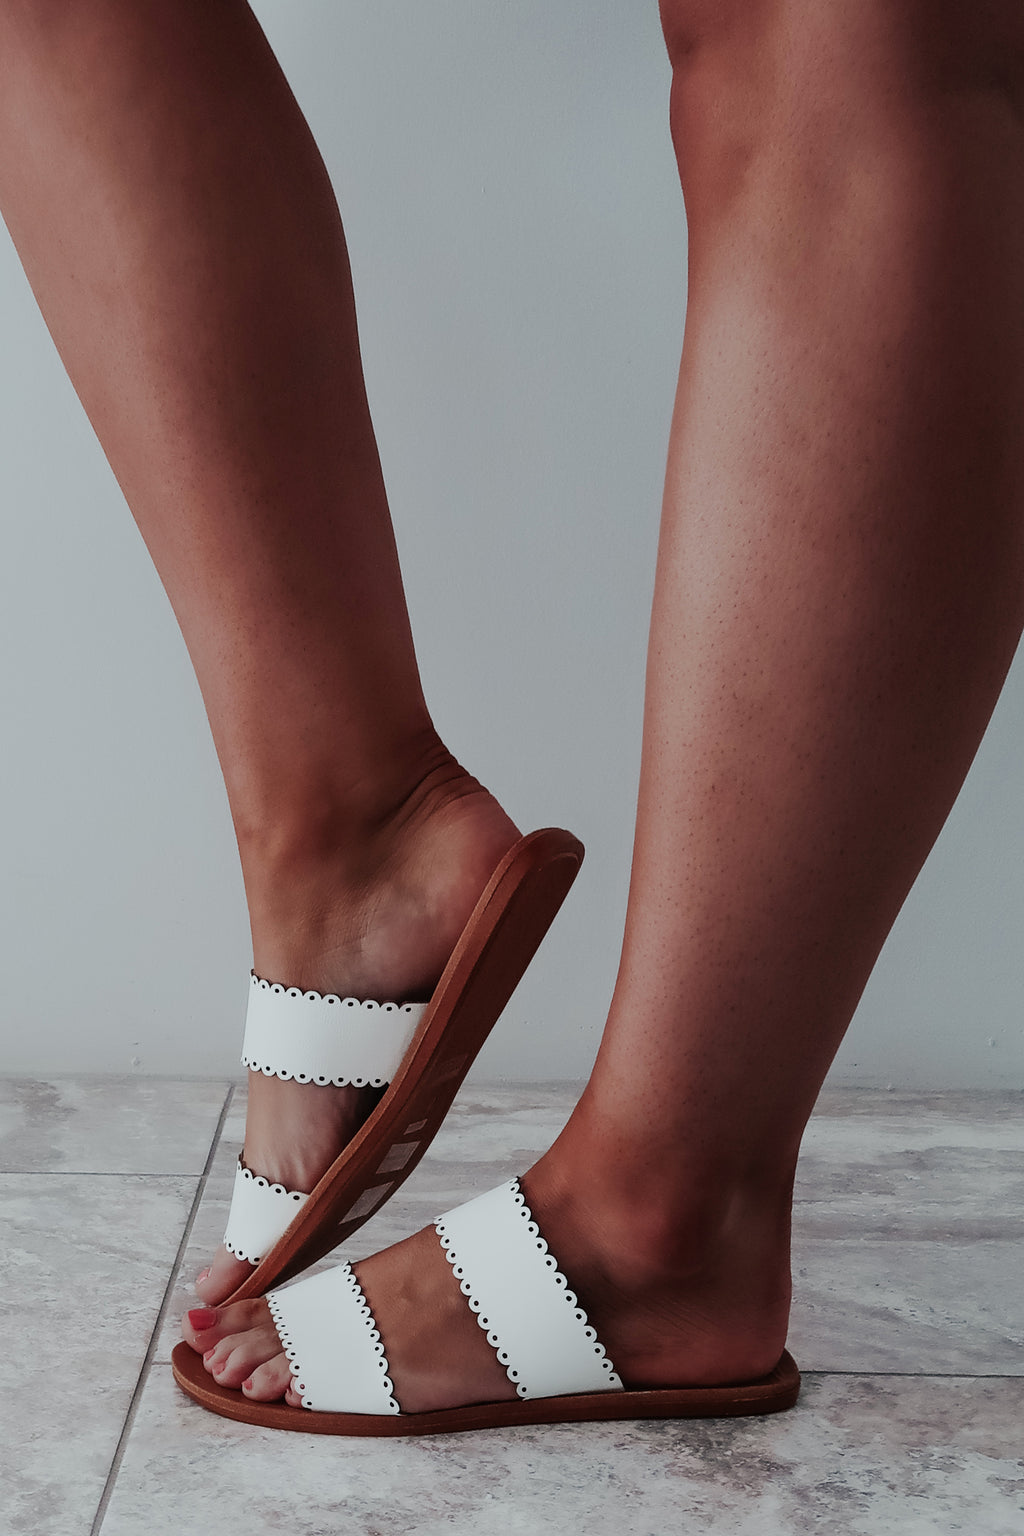 Summer Classic Sandals: White